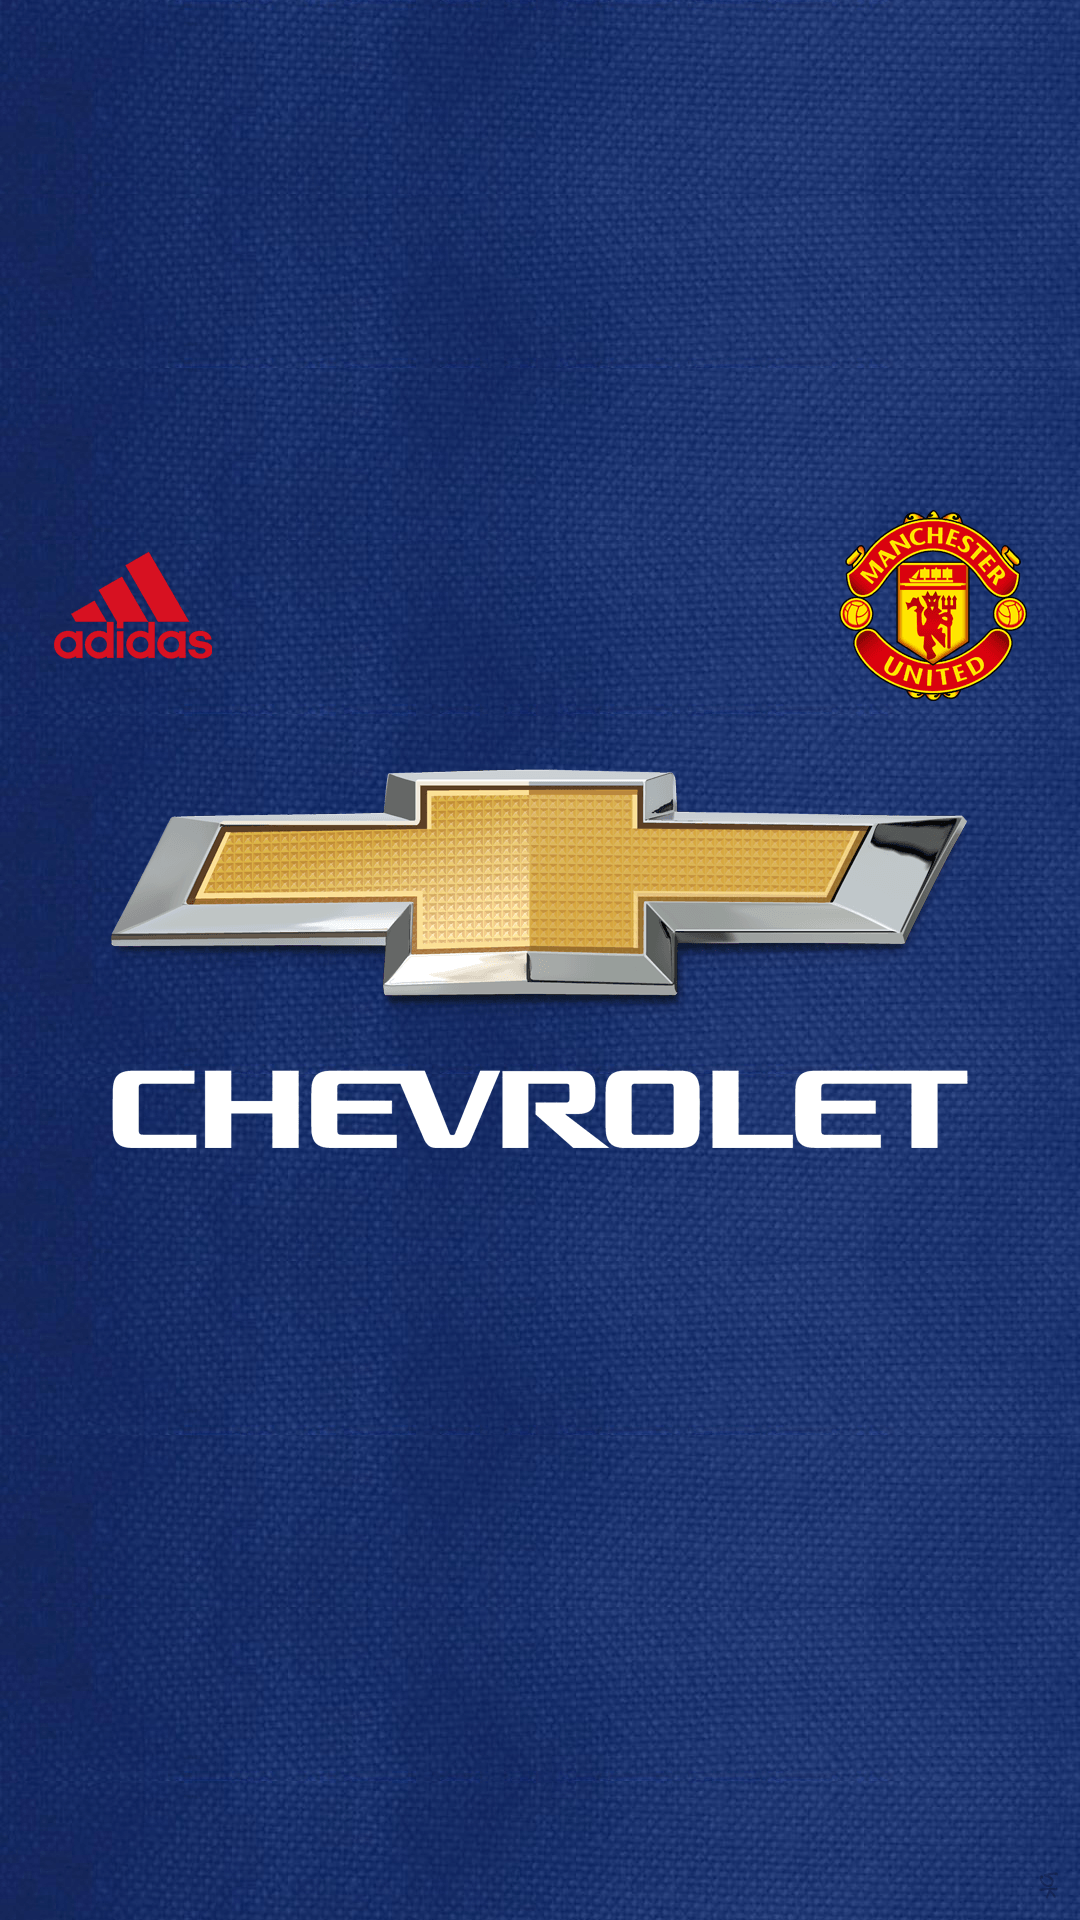 Download Manchester United Wallpapers 3D 2017 [1080x1920] 99 1080x1920